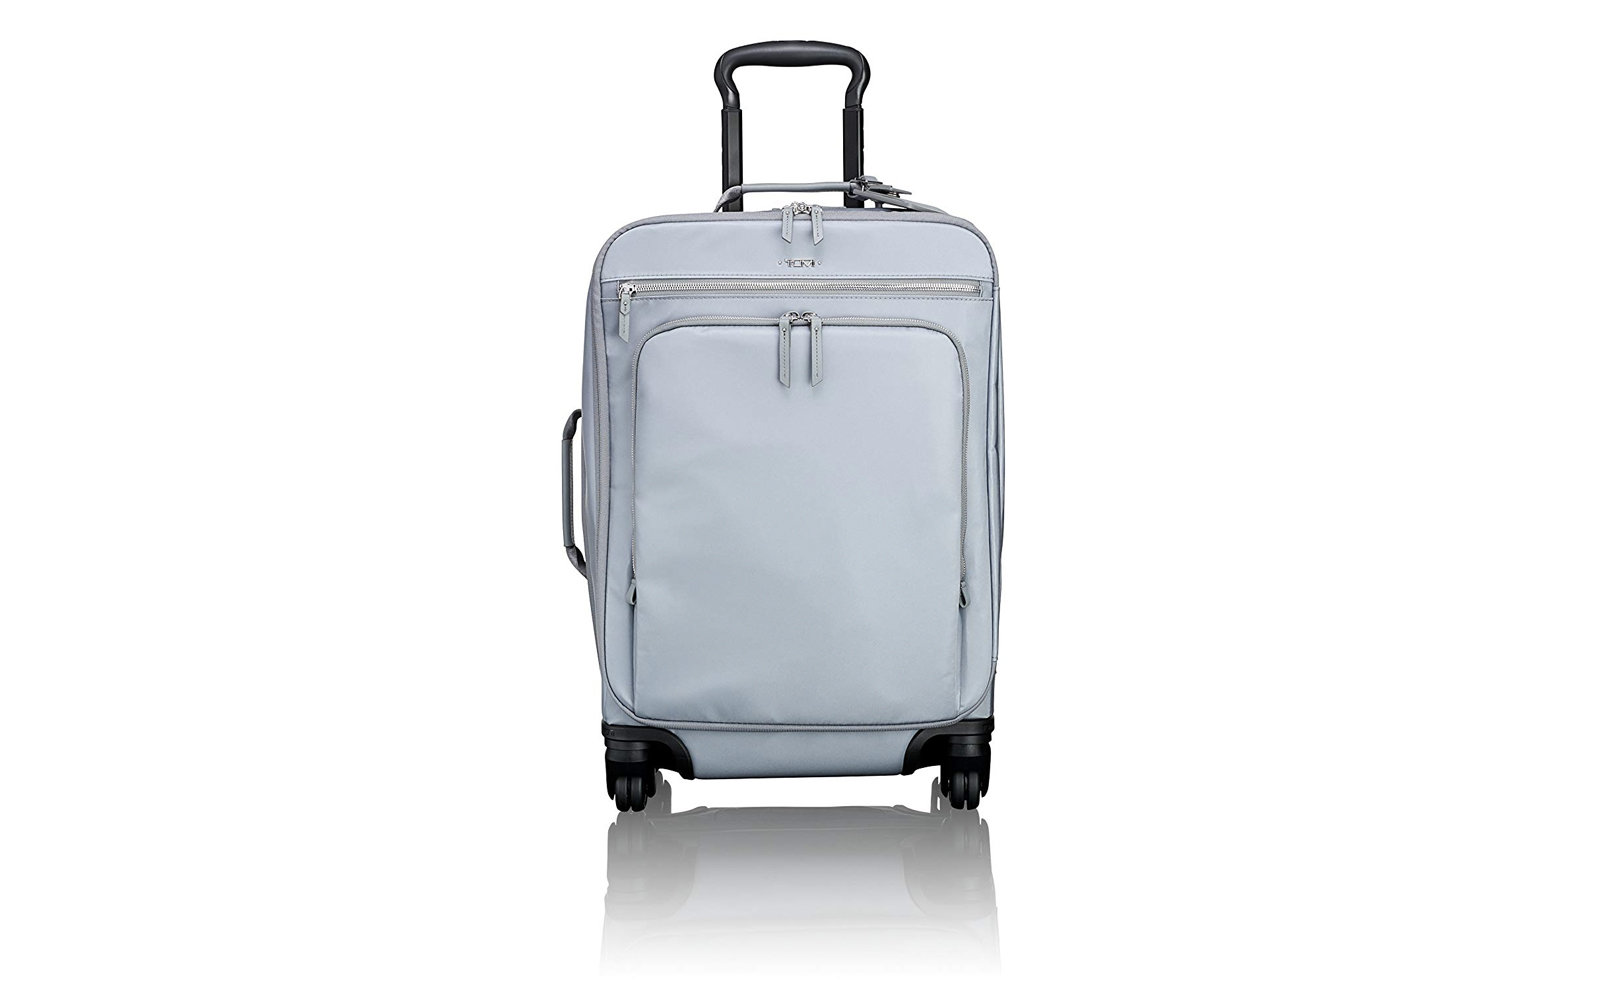 Tumi Super Leger International Carry-On